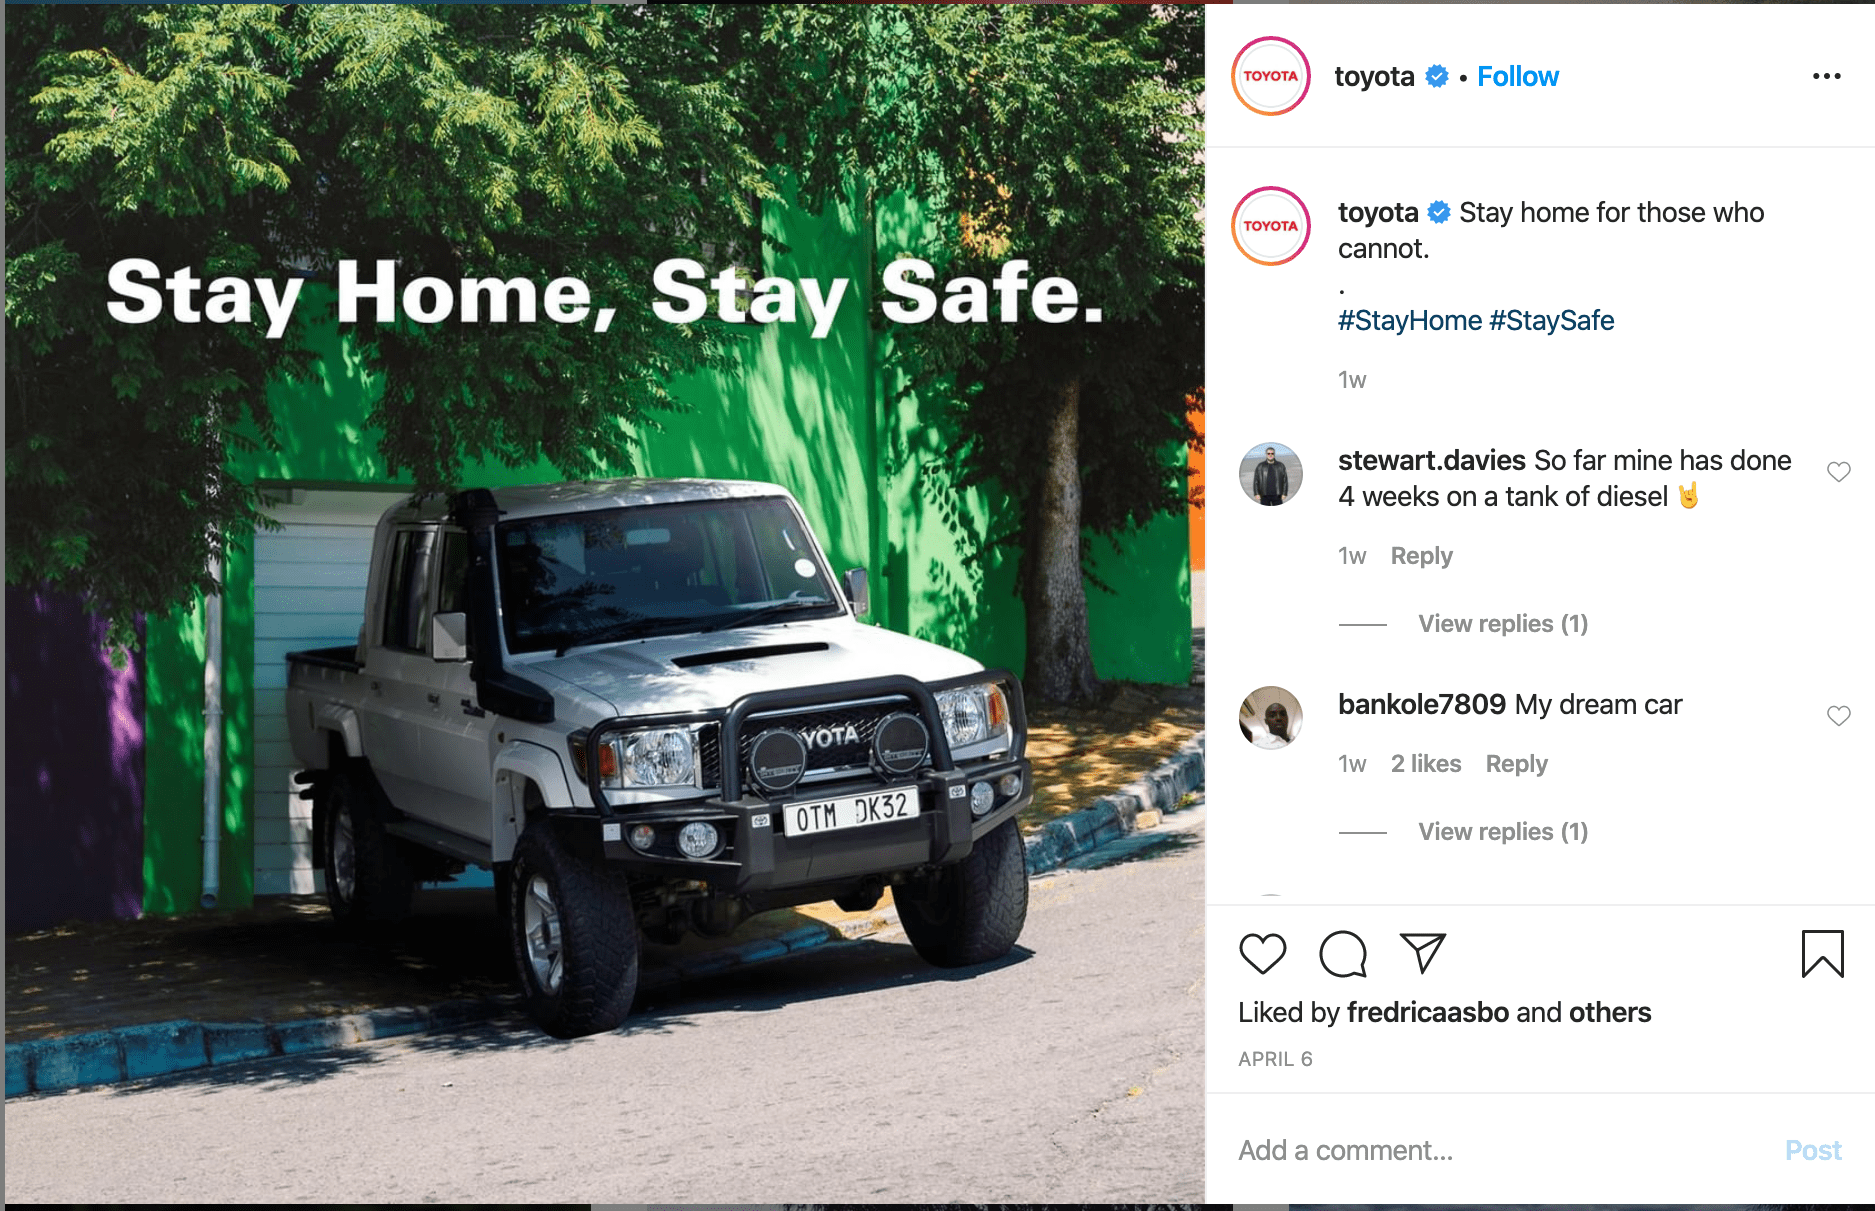 Toyota Instagram Post